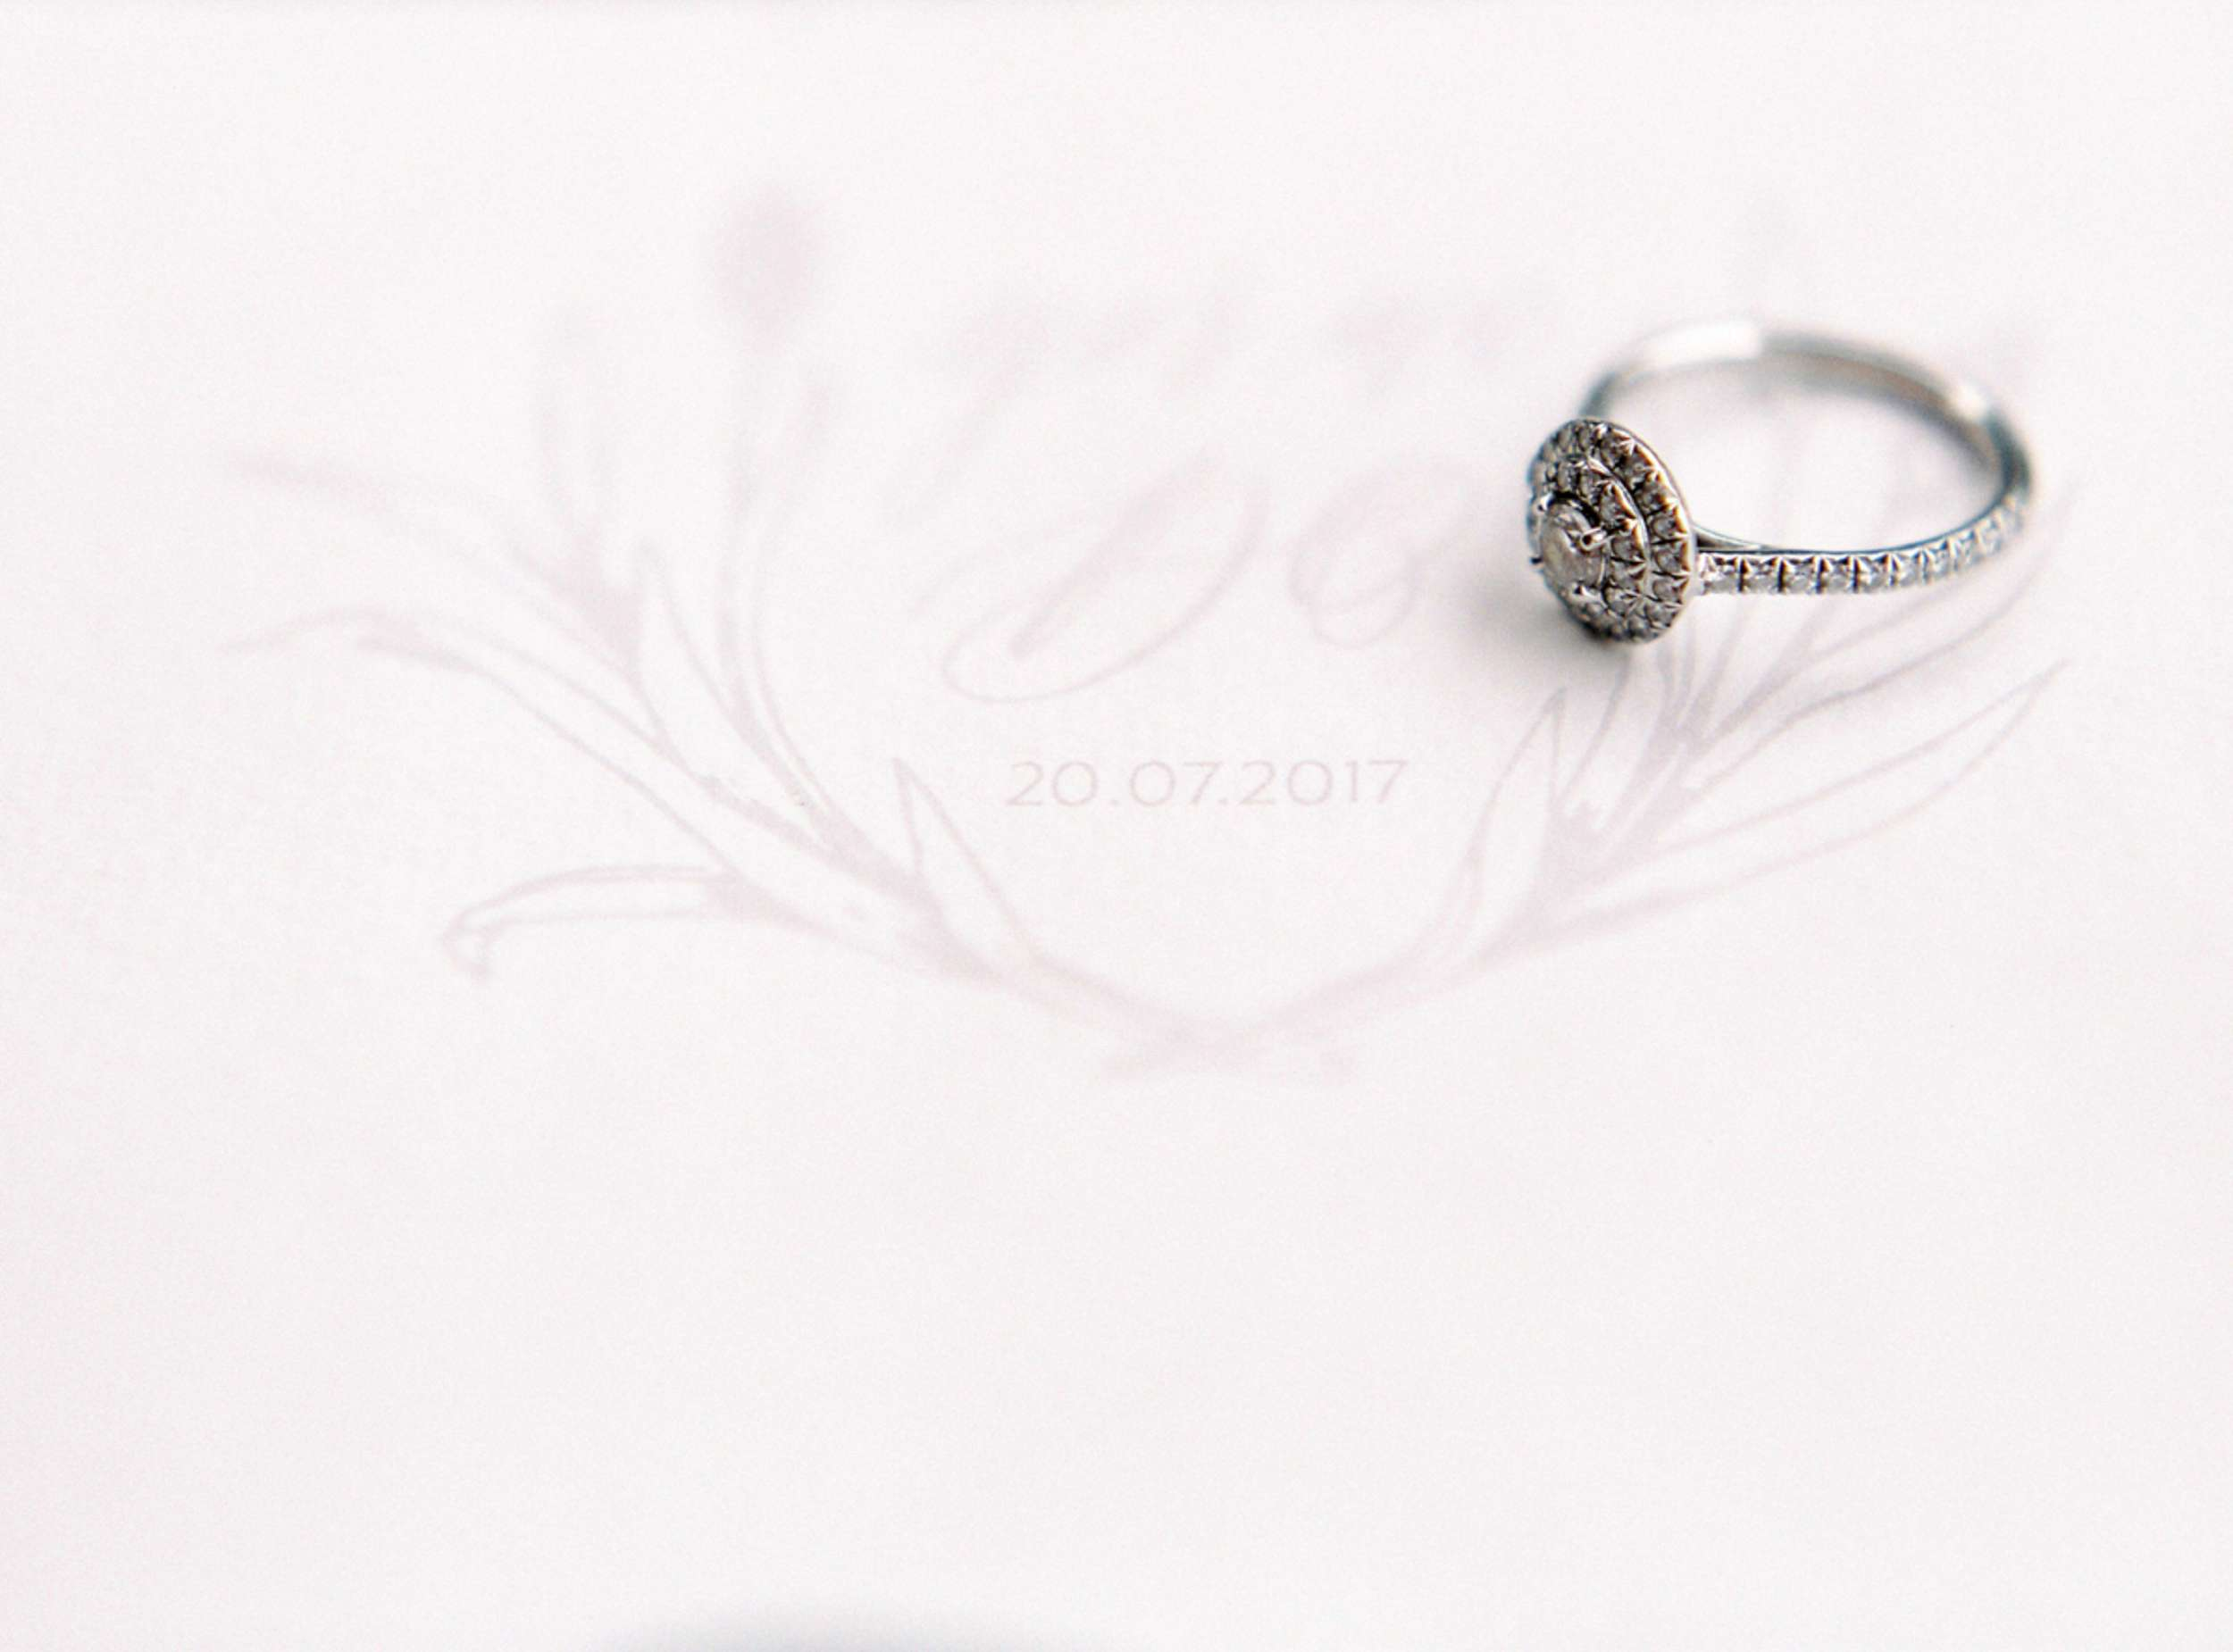 calligraphy monogram with engagement ring diamond